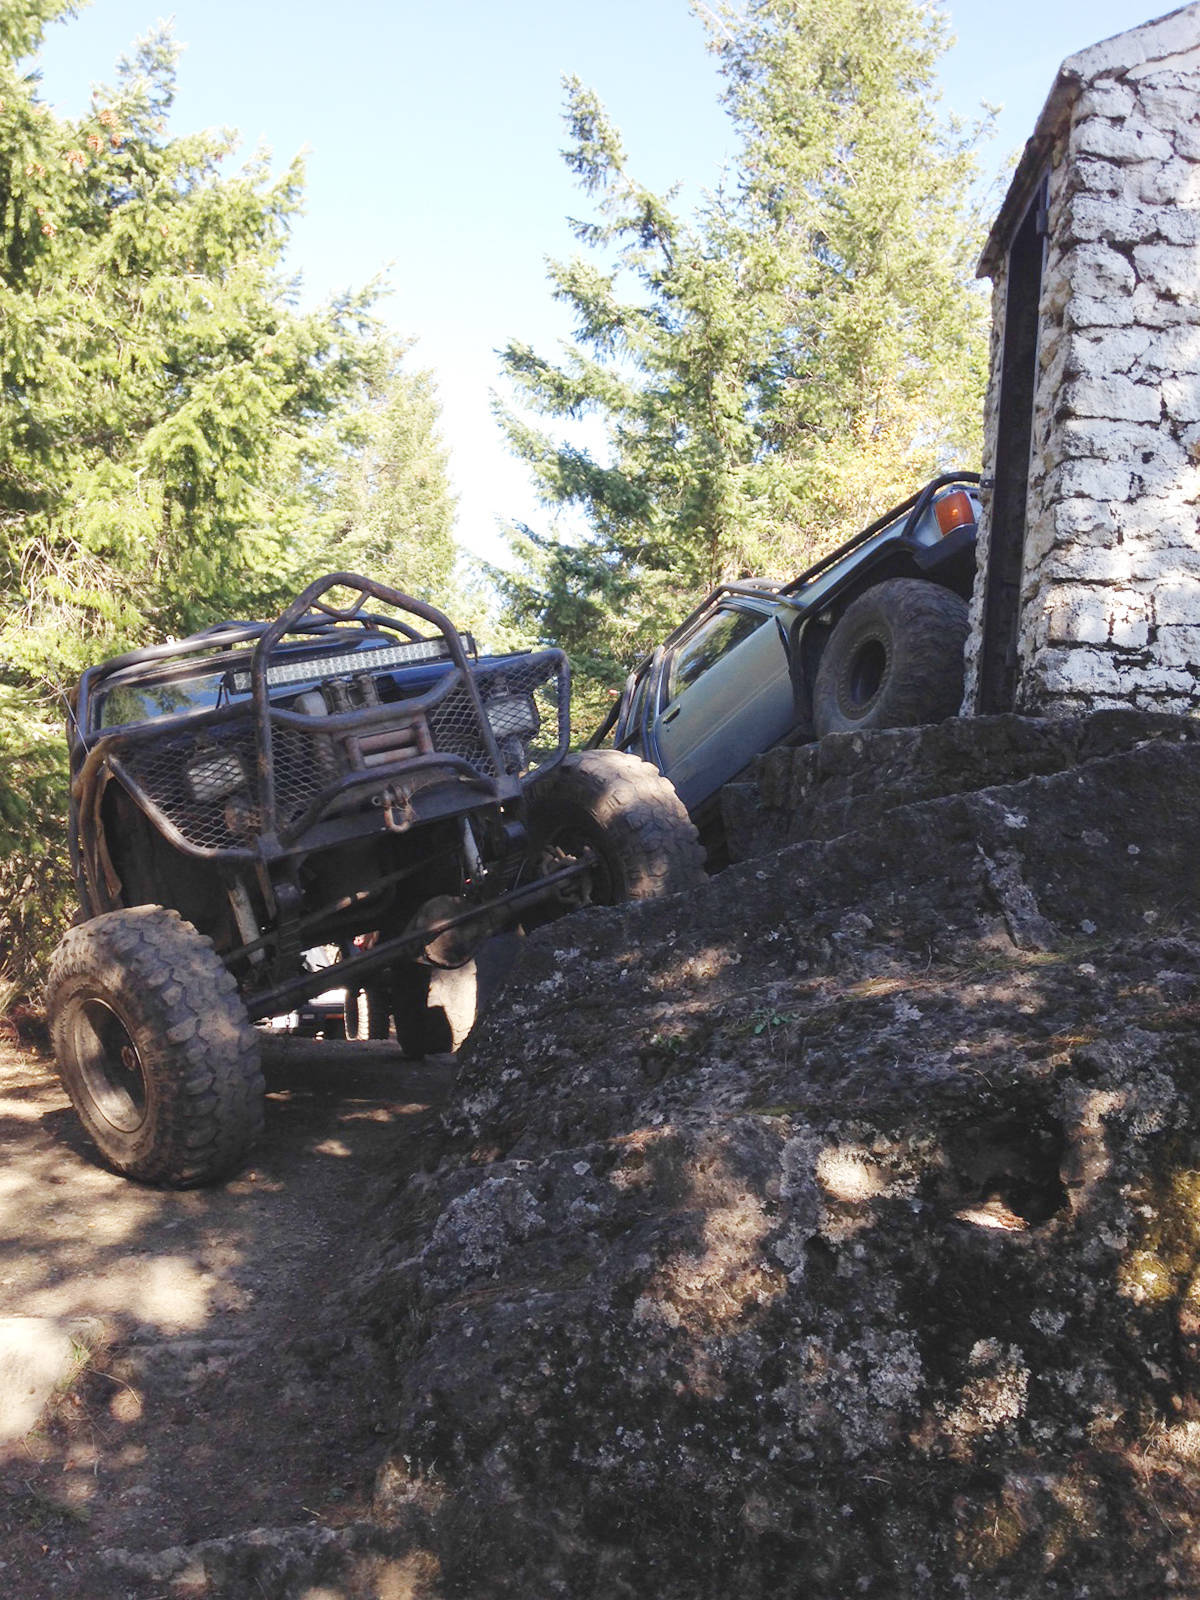 The province has decided to get involved in finding ways to protect the memorial cairn on top of Mount Prevost after these off-road vehicles were spotted with their front tires almost touching it in October. (Submitted photo)